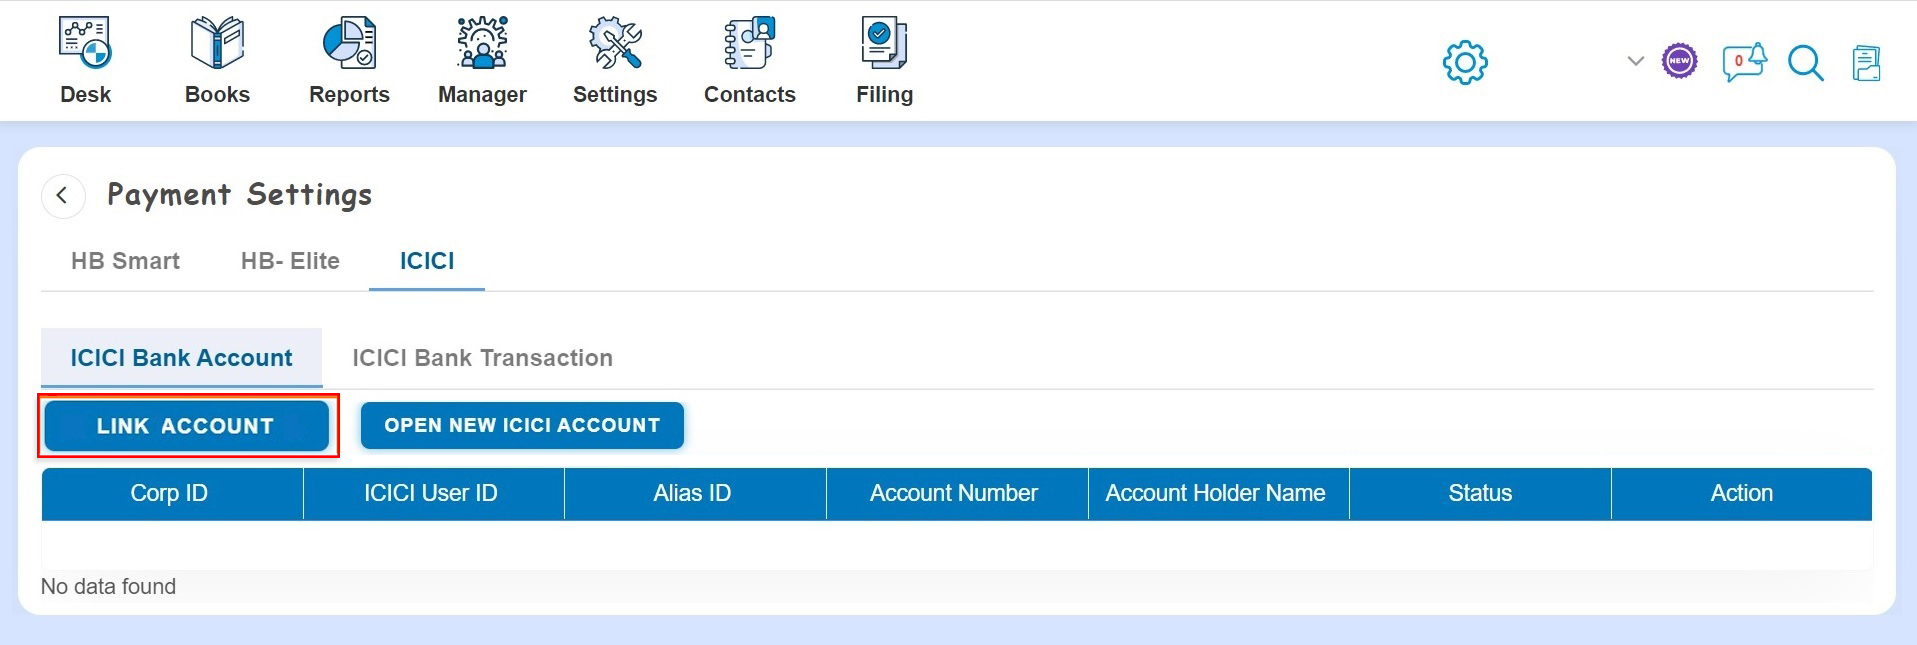 payment-settings-page-link-new-account-btn